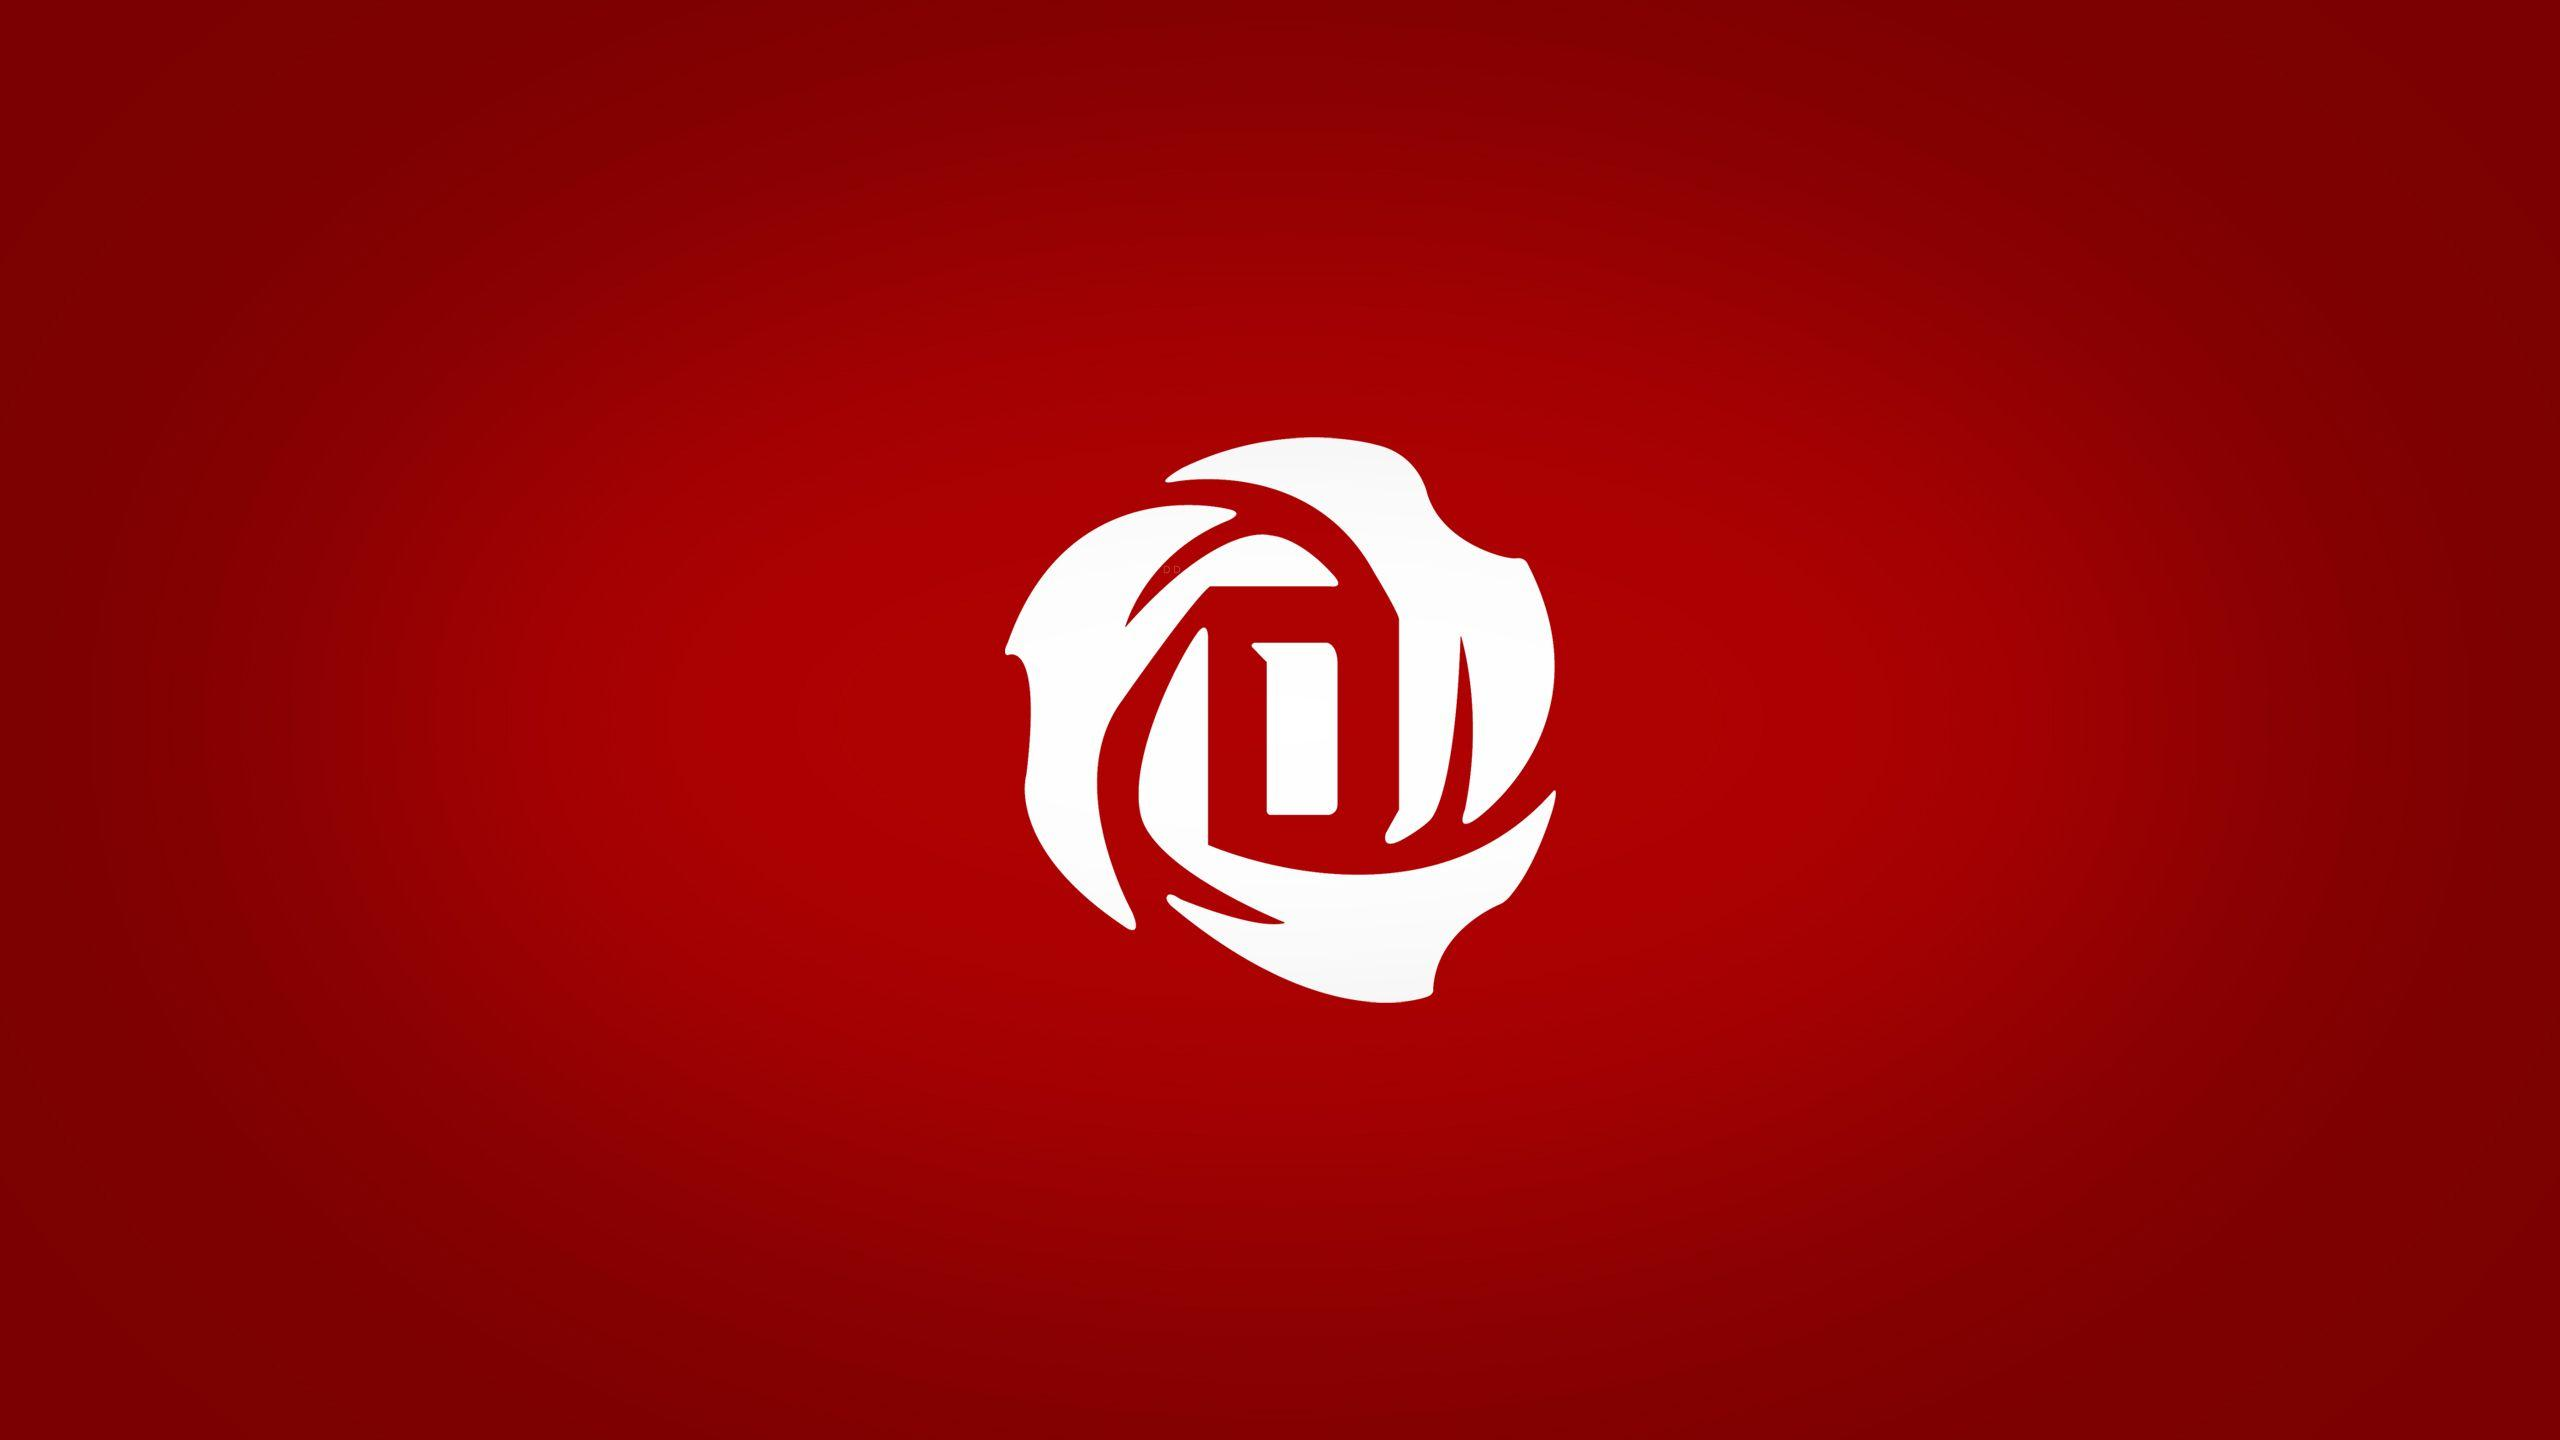 Derrick Rose Logo Wallpapers - Wallpaper Cave